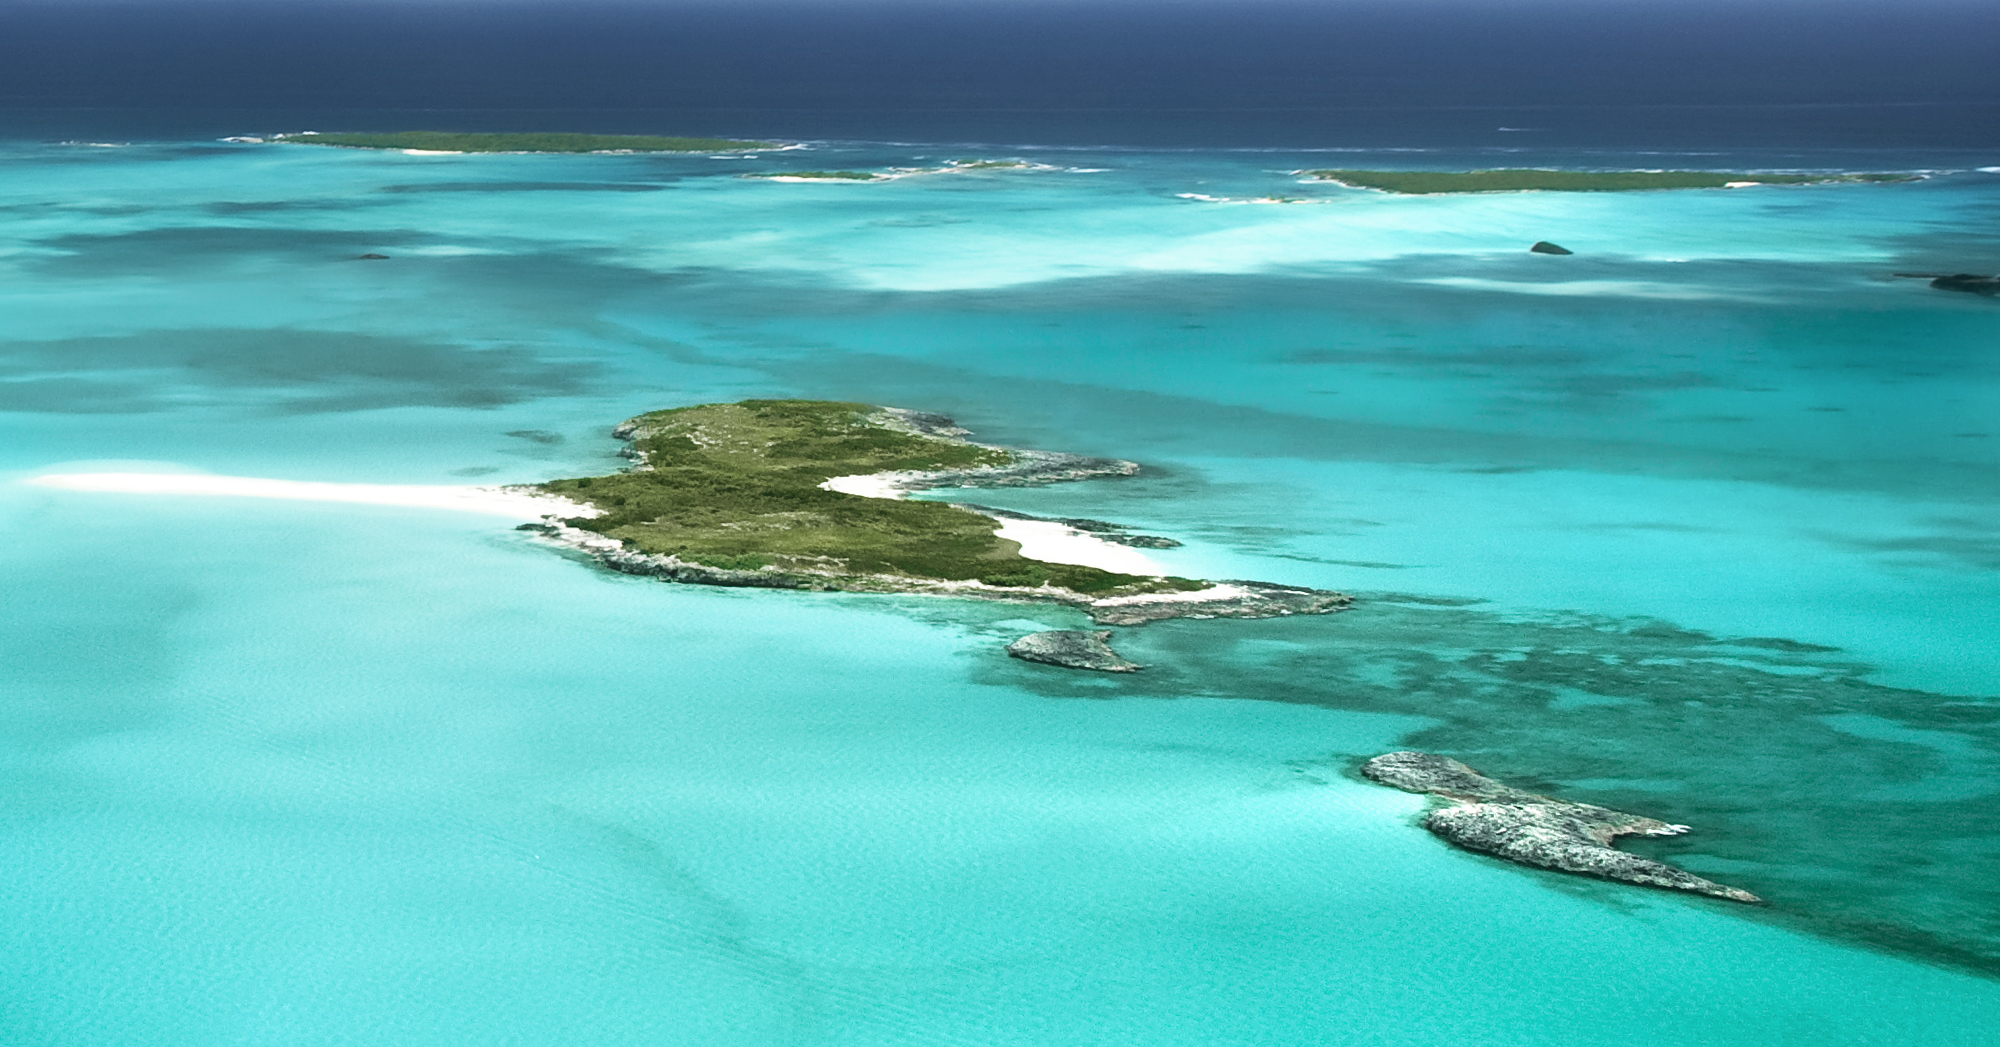 Bahamas Day Trips and Bahamas Tours from Florida. Fly to the swimming pigs at Staniel Cay in the Exumas, Harbour Island Eleuthera, Abacos Islands Hope Town and many more Bahamas Islands Destinations.